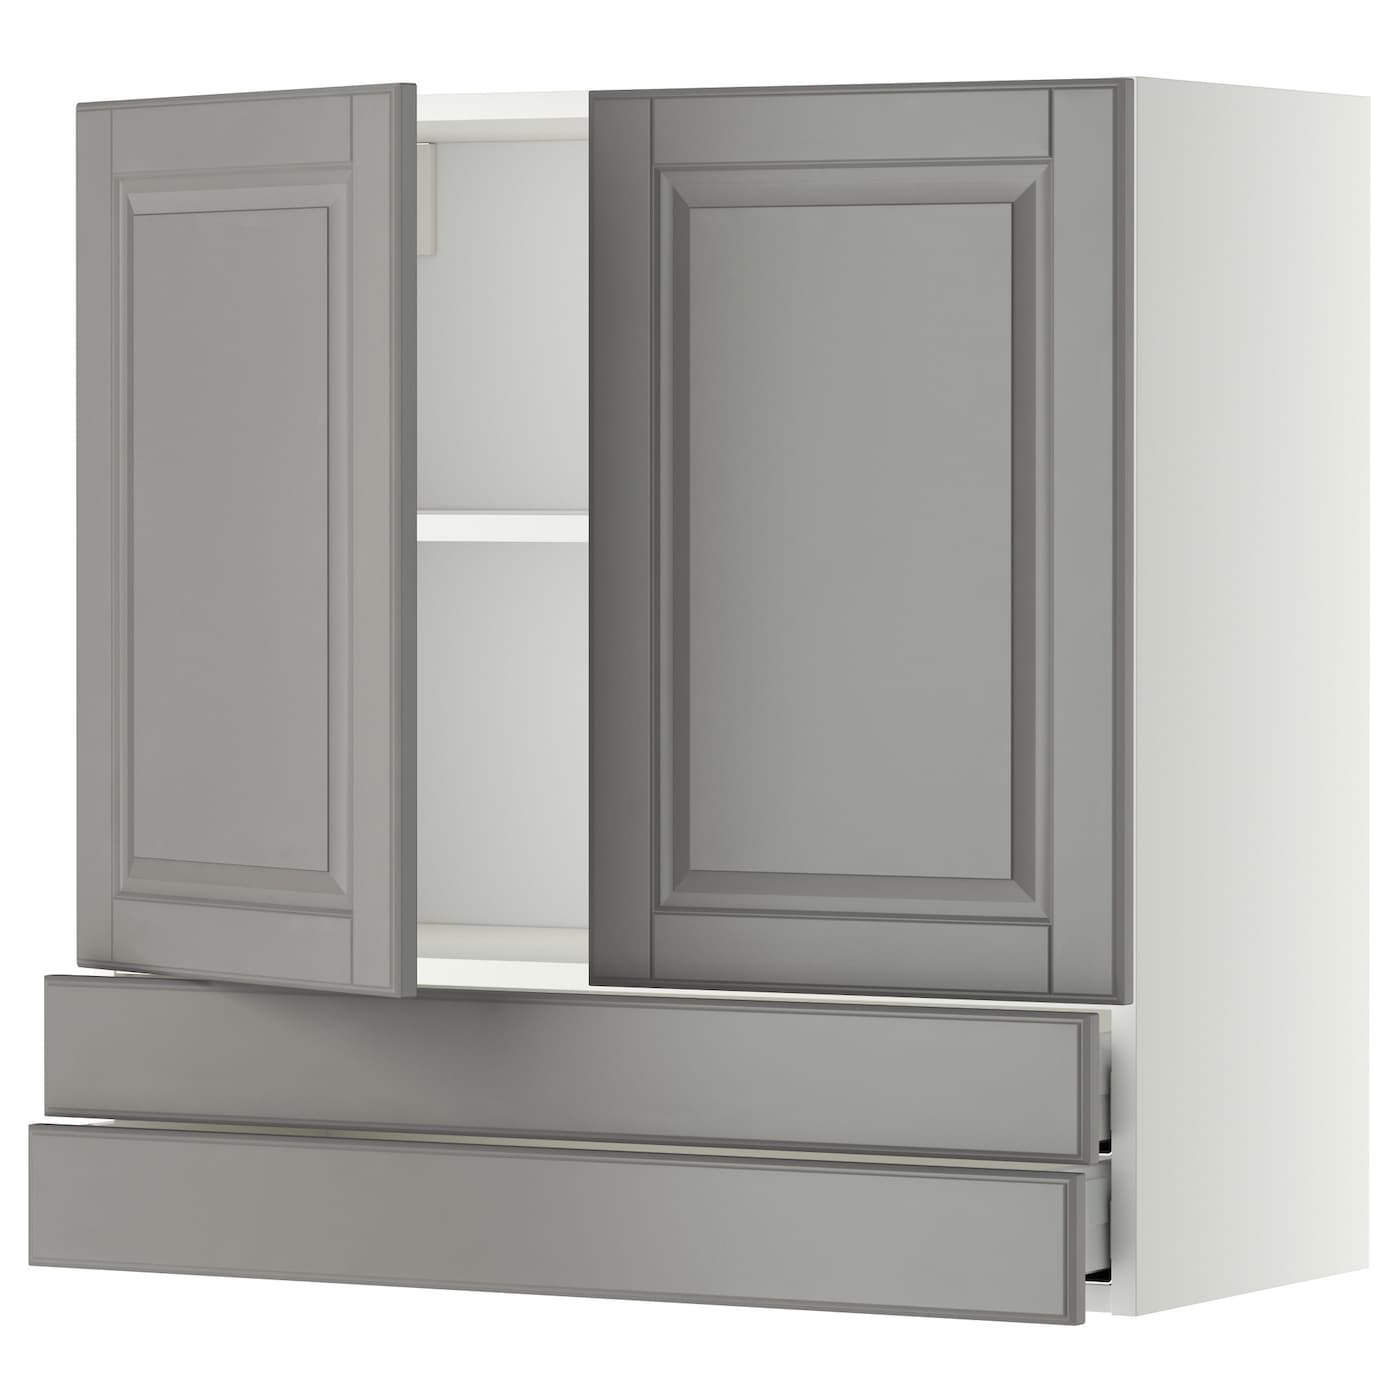 Wall cabinets kitchen wall units ikea for Grey kitchen wall units